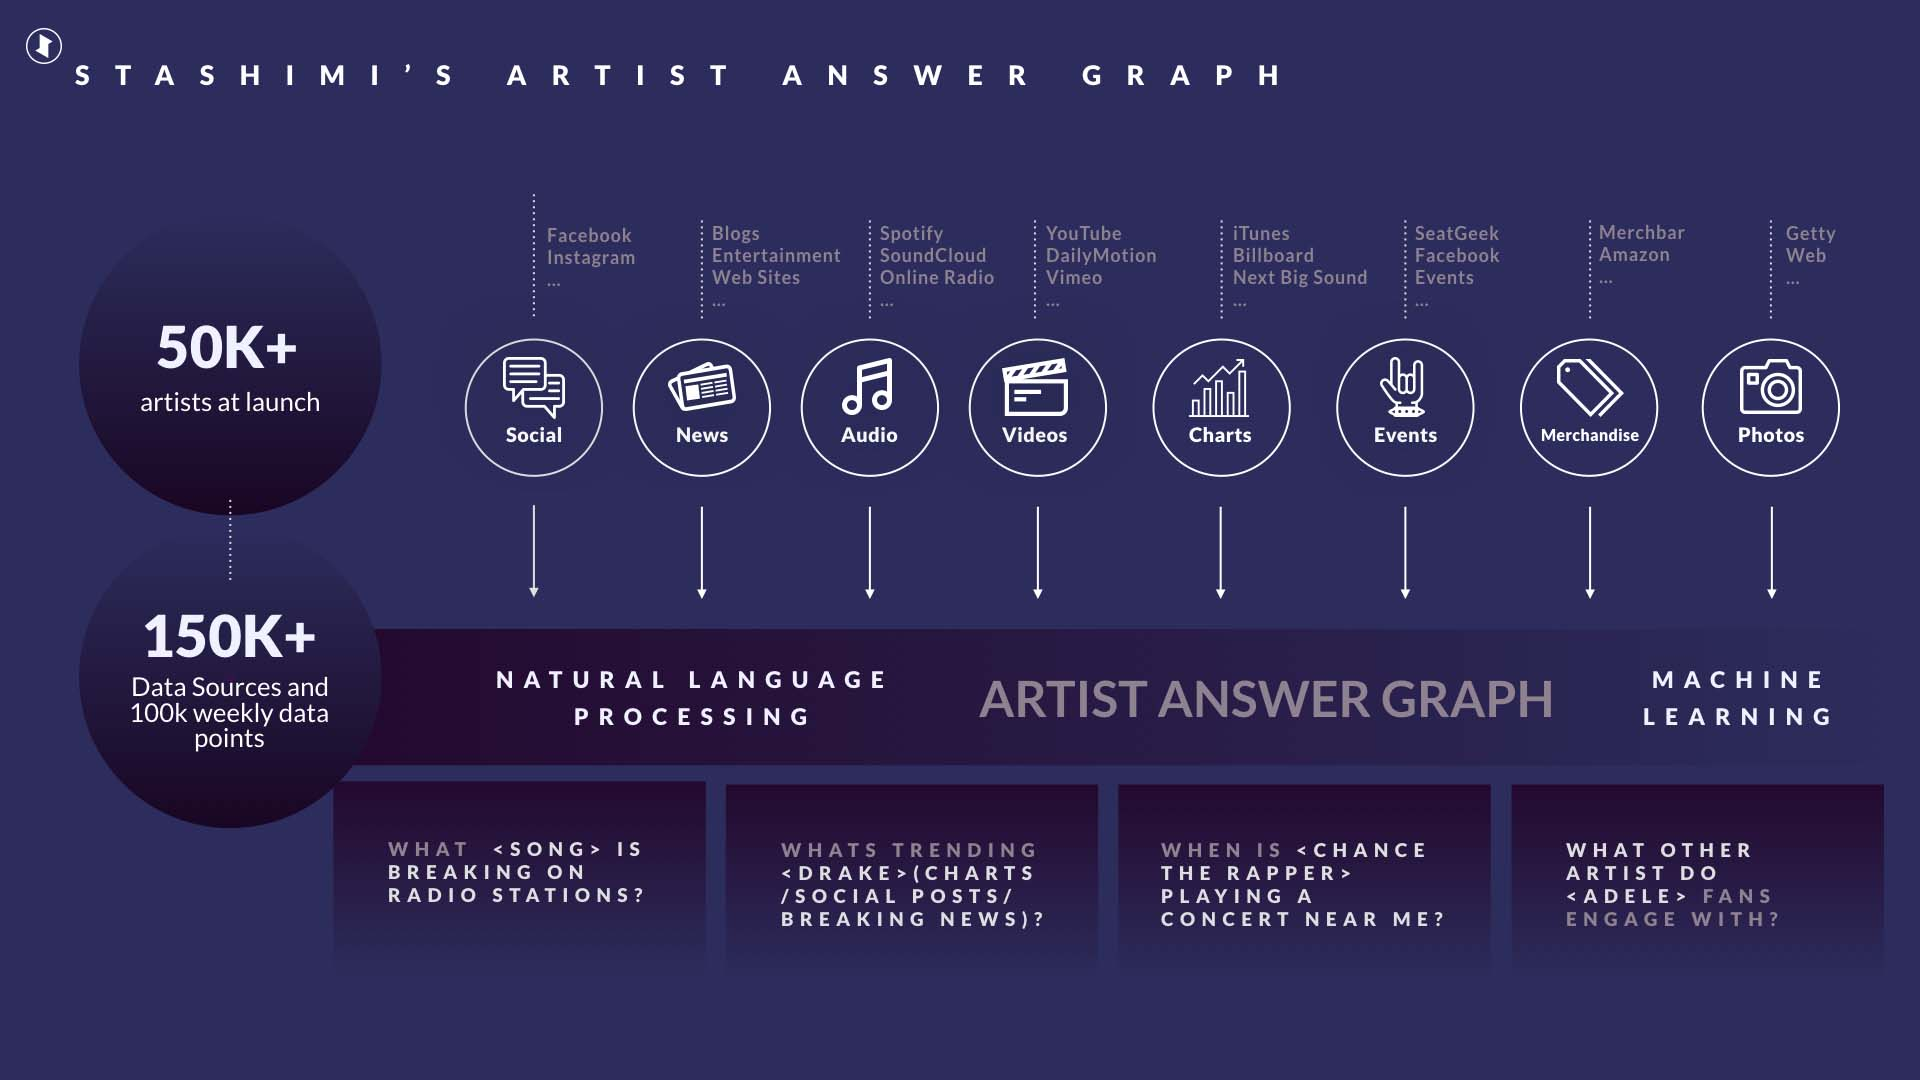 Features include proprietary smart aggregation technology that creates an Artist Answer Graph